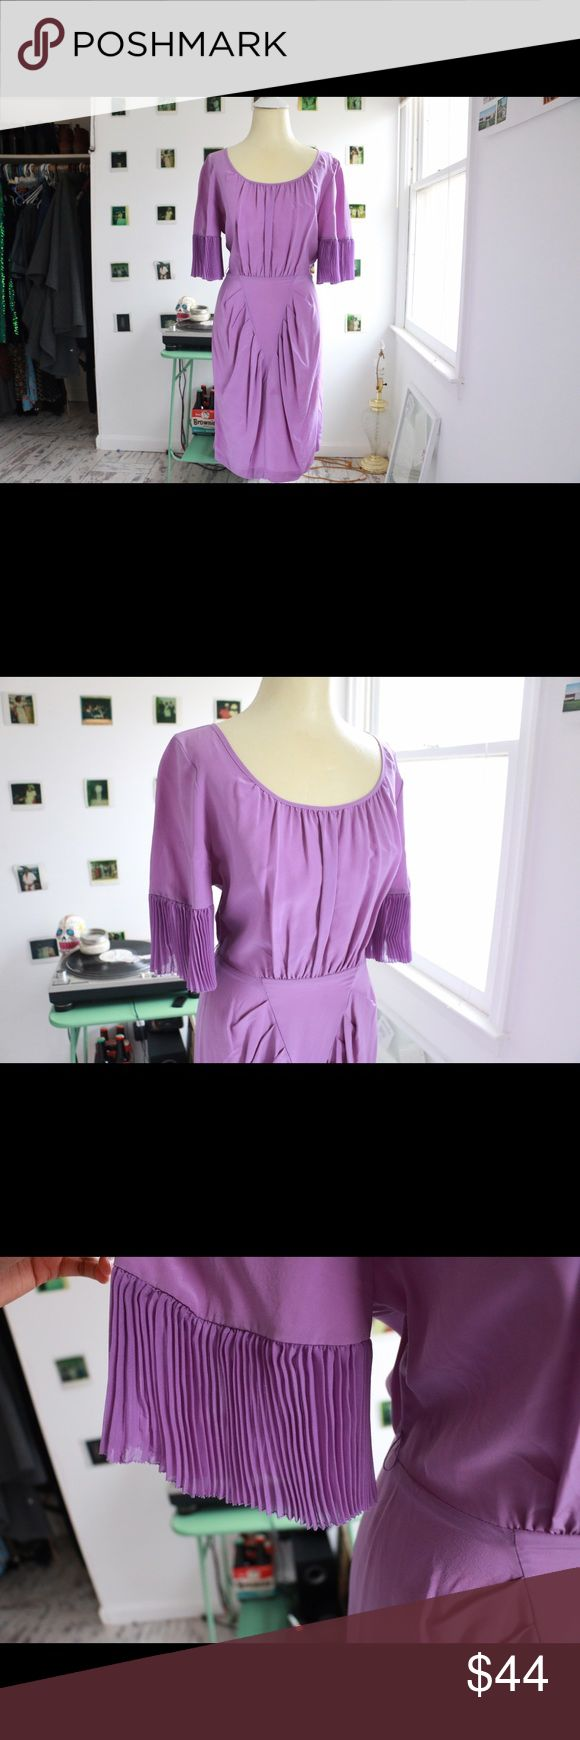 BCBG MAX AZRIA Purple Dress Bio: This interesting piece features sheer pleated detailing at sleeves, a portrait neckline and folding at hips. Details: Hip to waist zip and snap closure at back, pleated sleeves. Bust: 36 inches Waist: 28 inches Hips: 36 inches Full Garment Length: 38 inches BCBGMaxAzria Dresses Midi